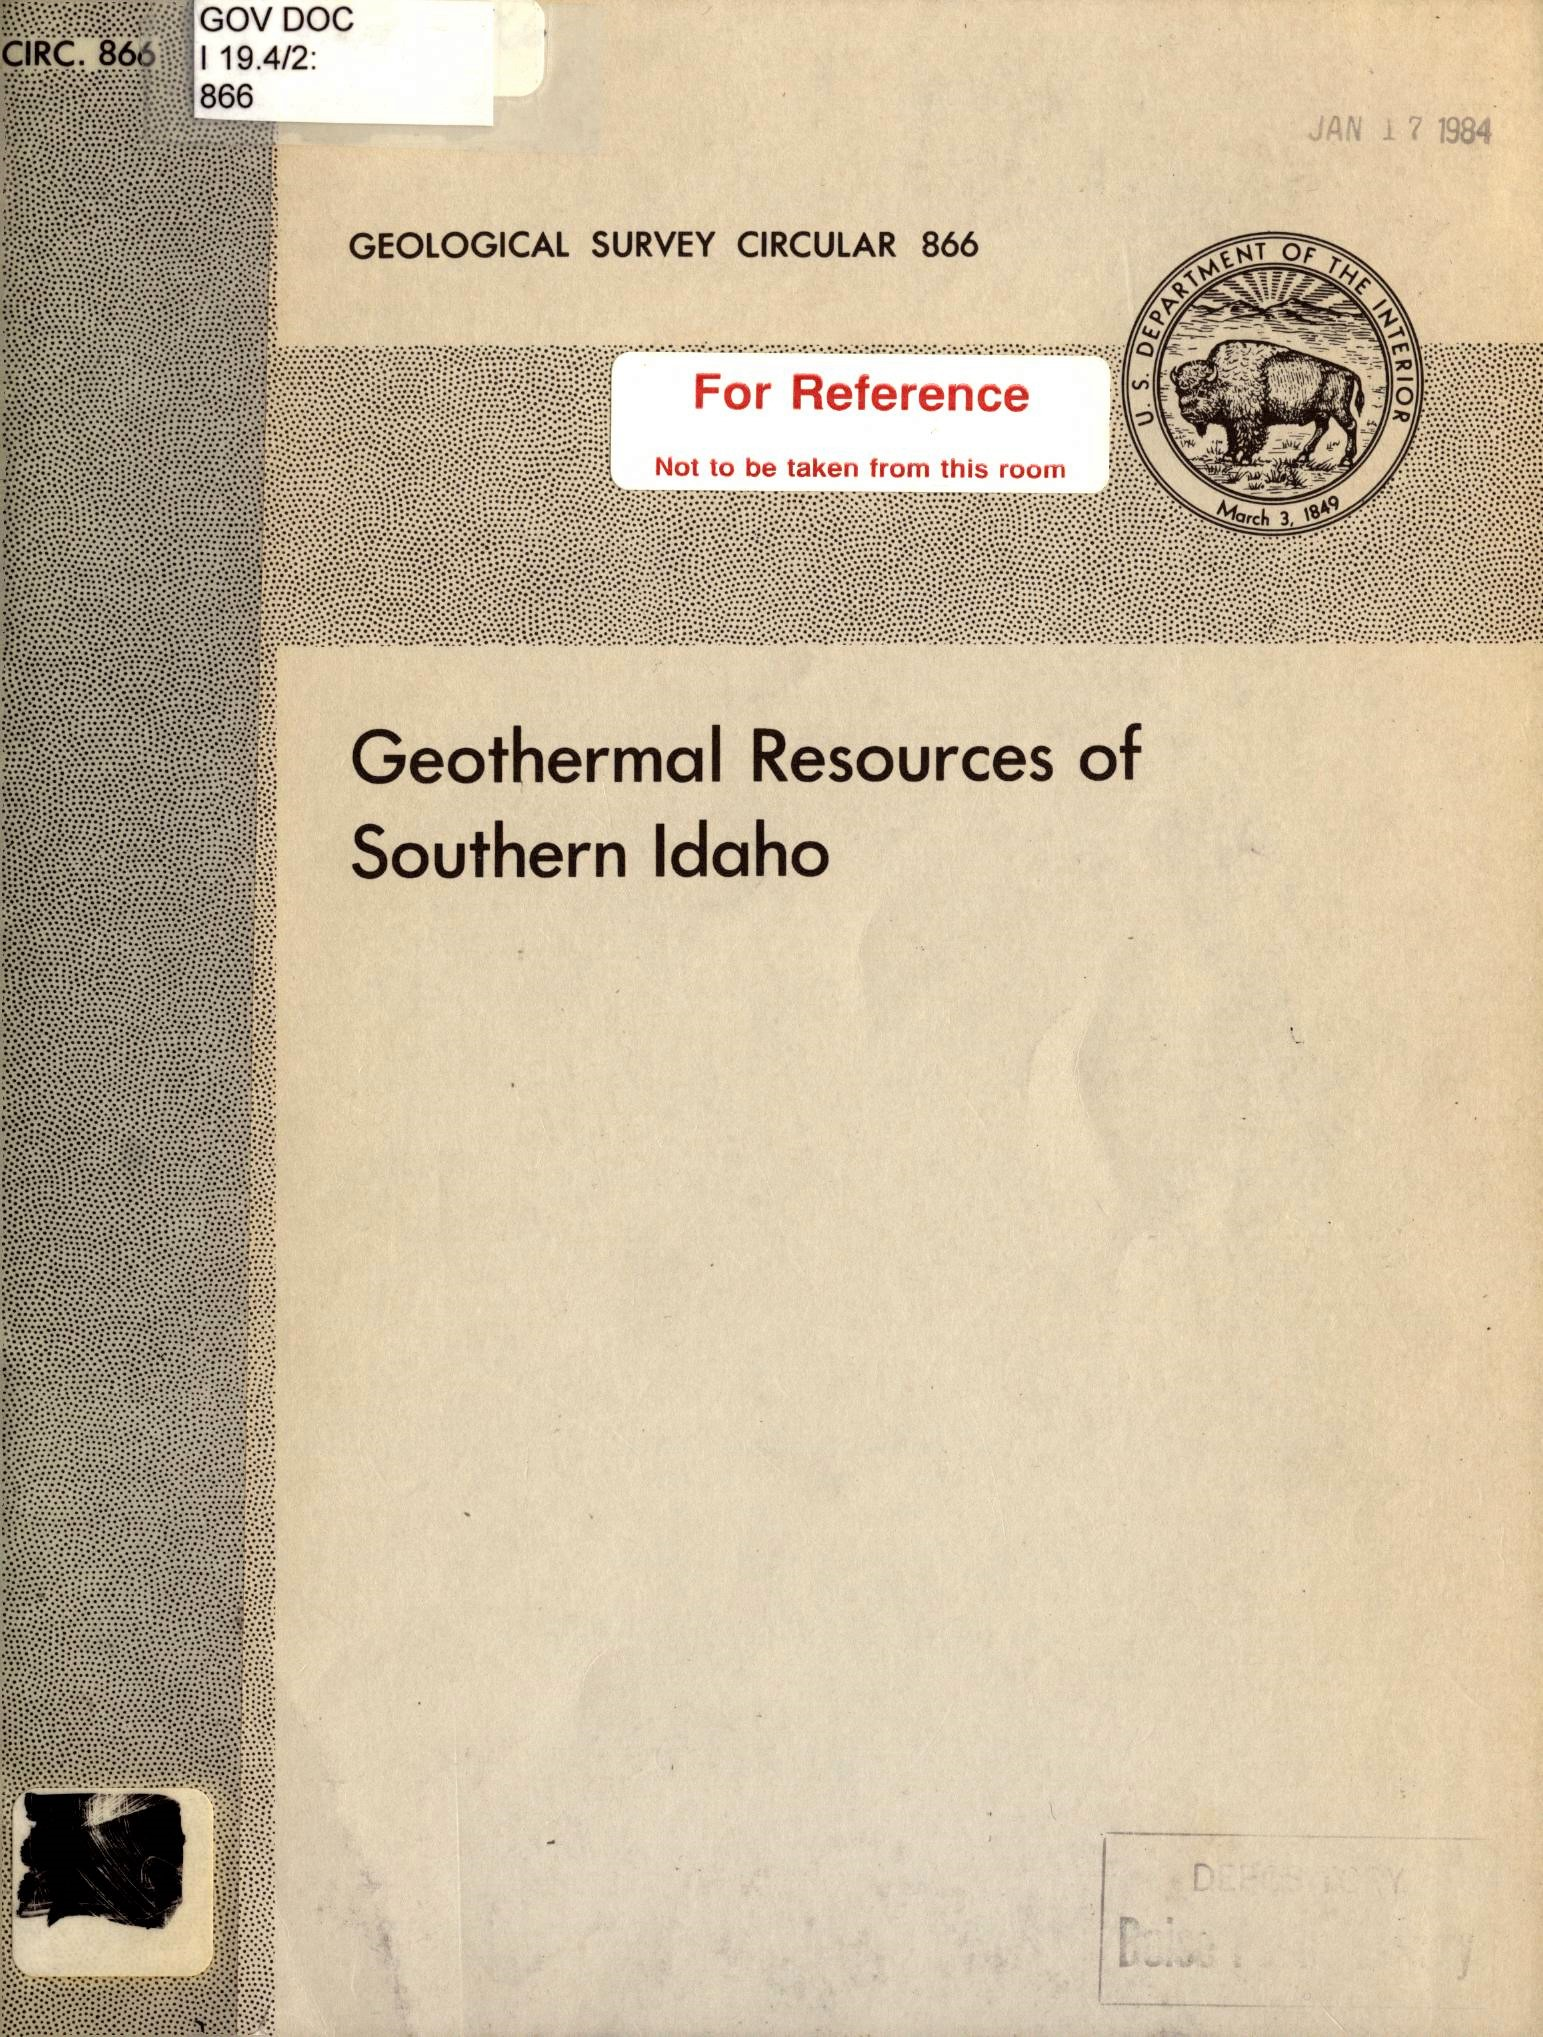 Geothermal Resources of Southern Idaho